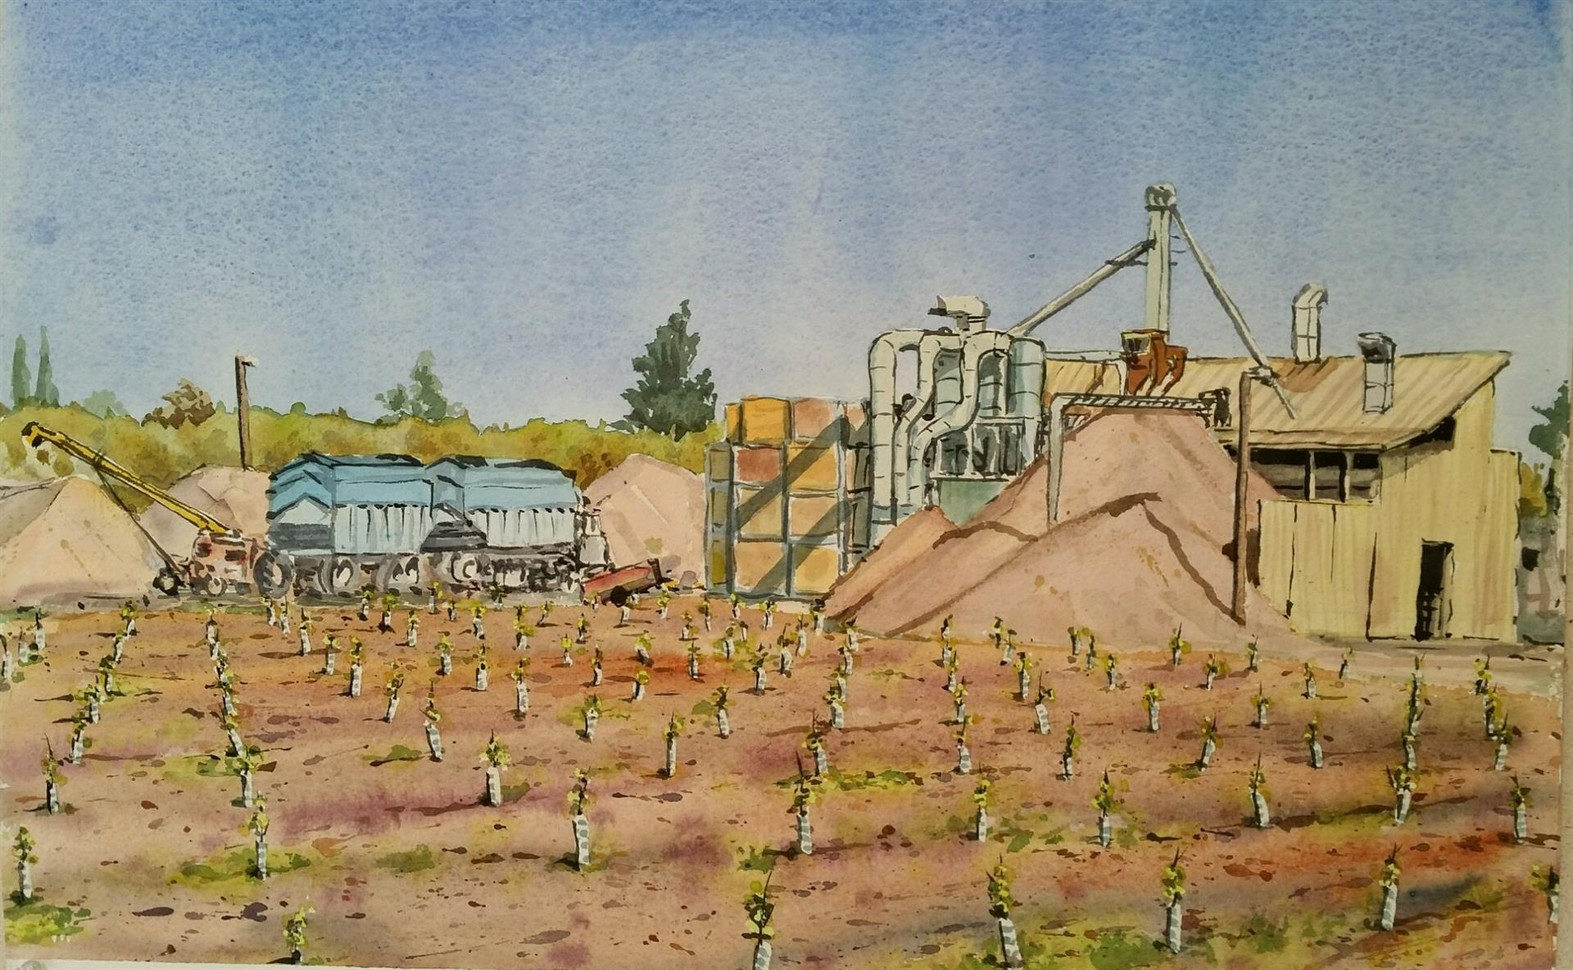 "Mark Selby (Los Osos), Working Huller, 2019 Watercolor, 14"" x 22"" $350"